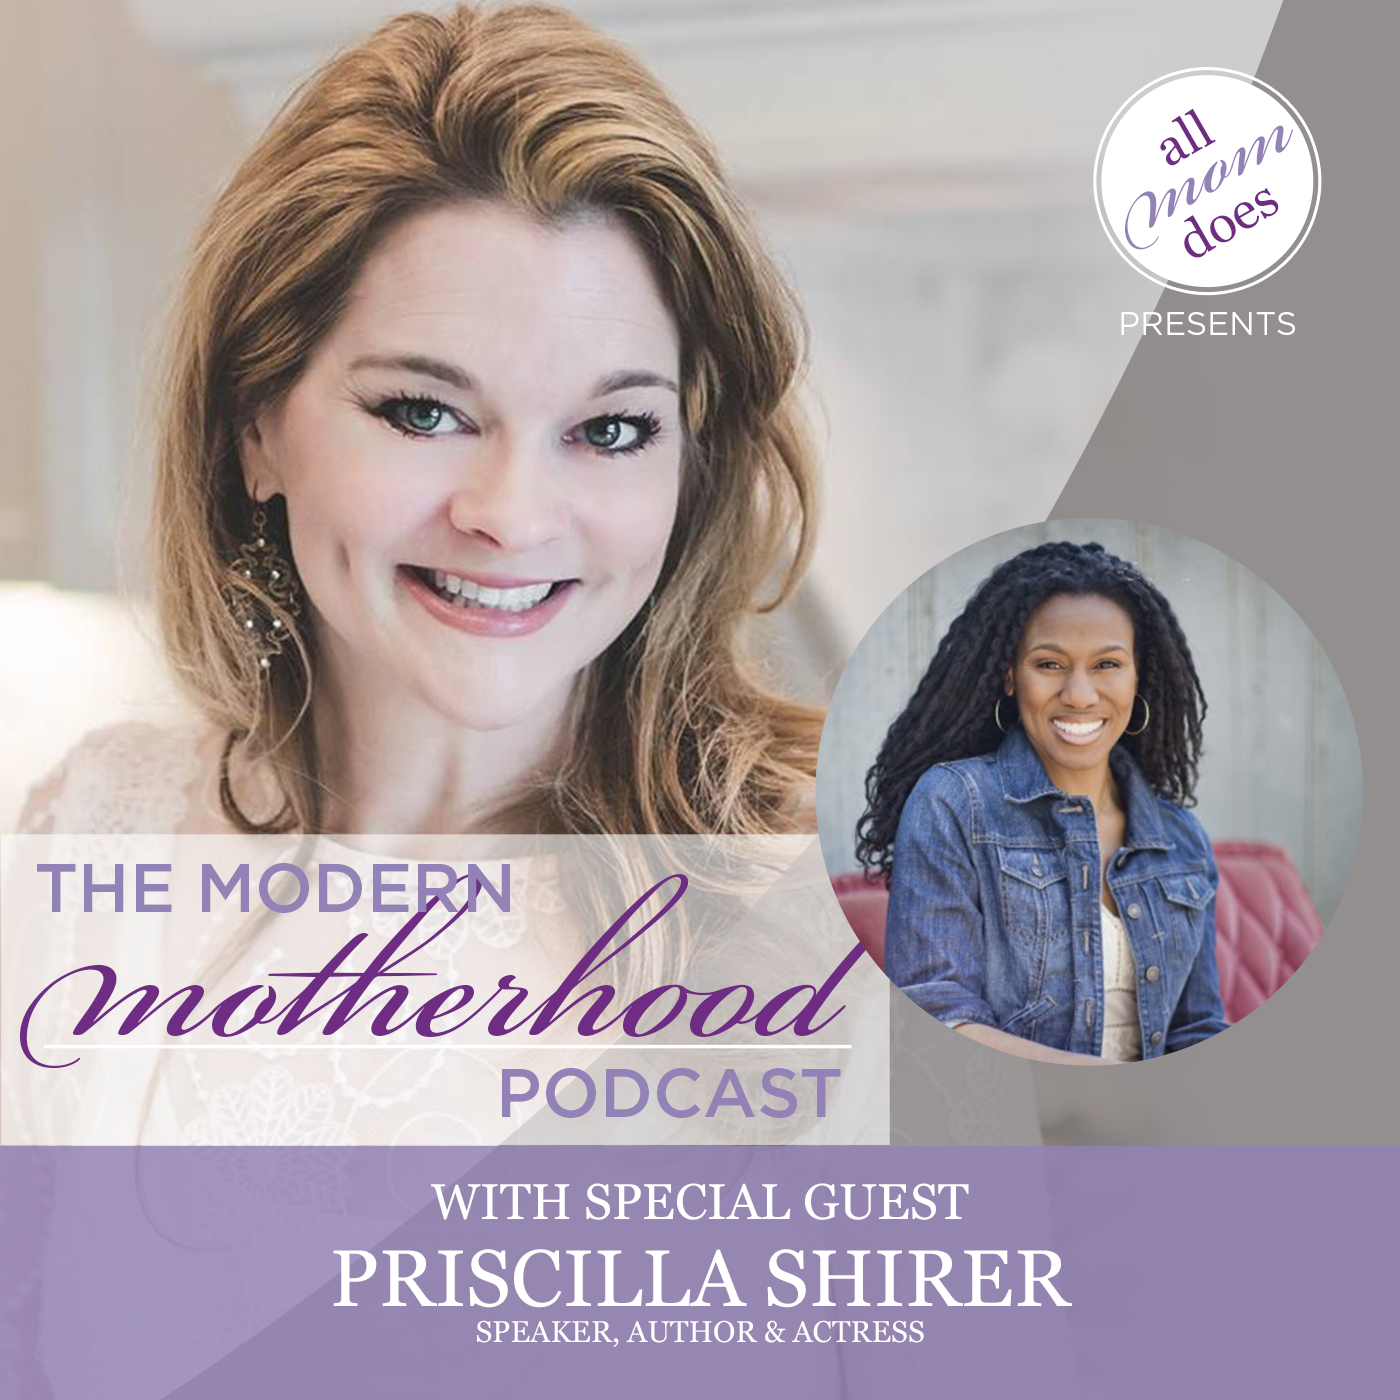 The Modern Motherhood Podcast #13: Priscilla Shirer